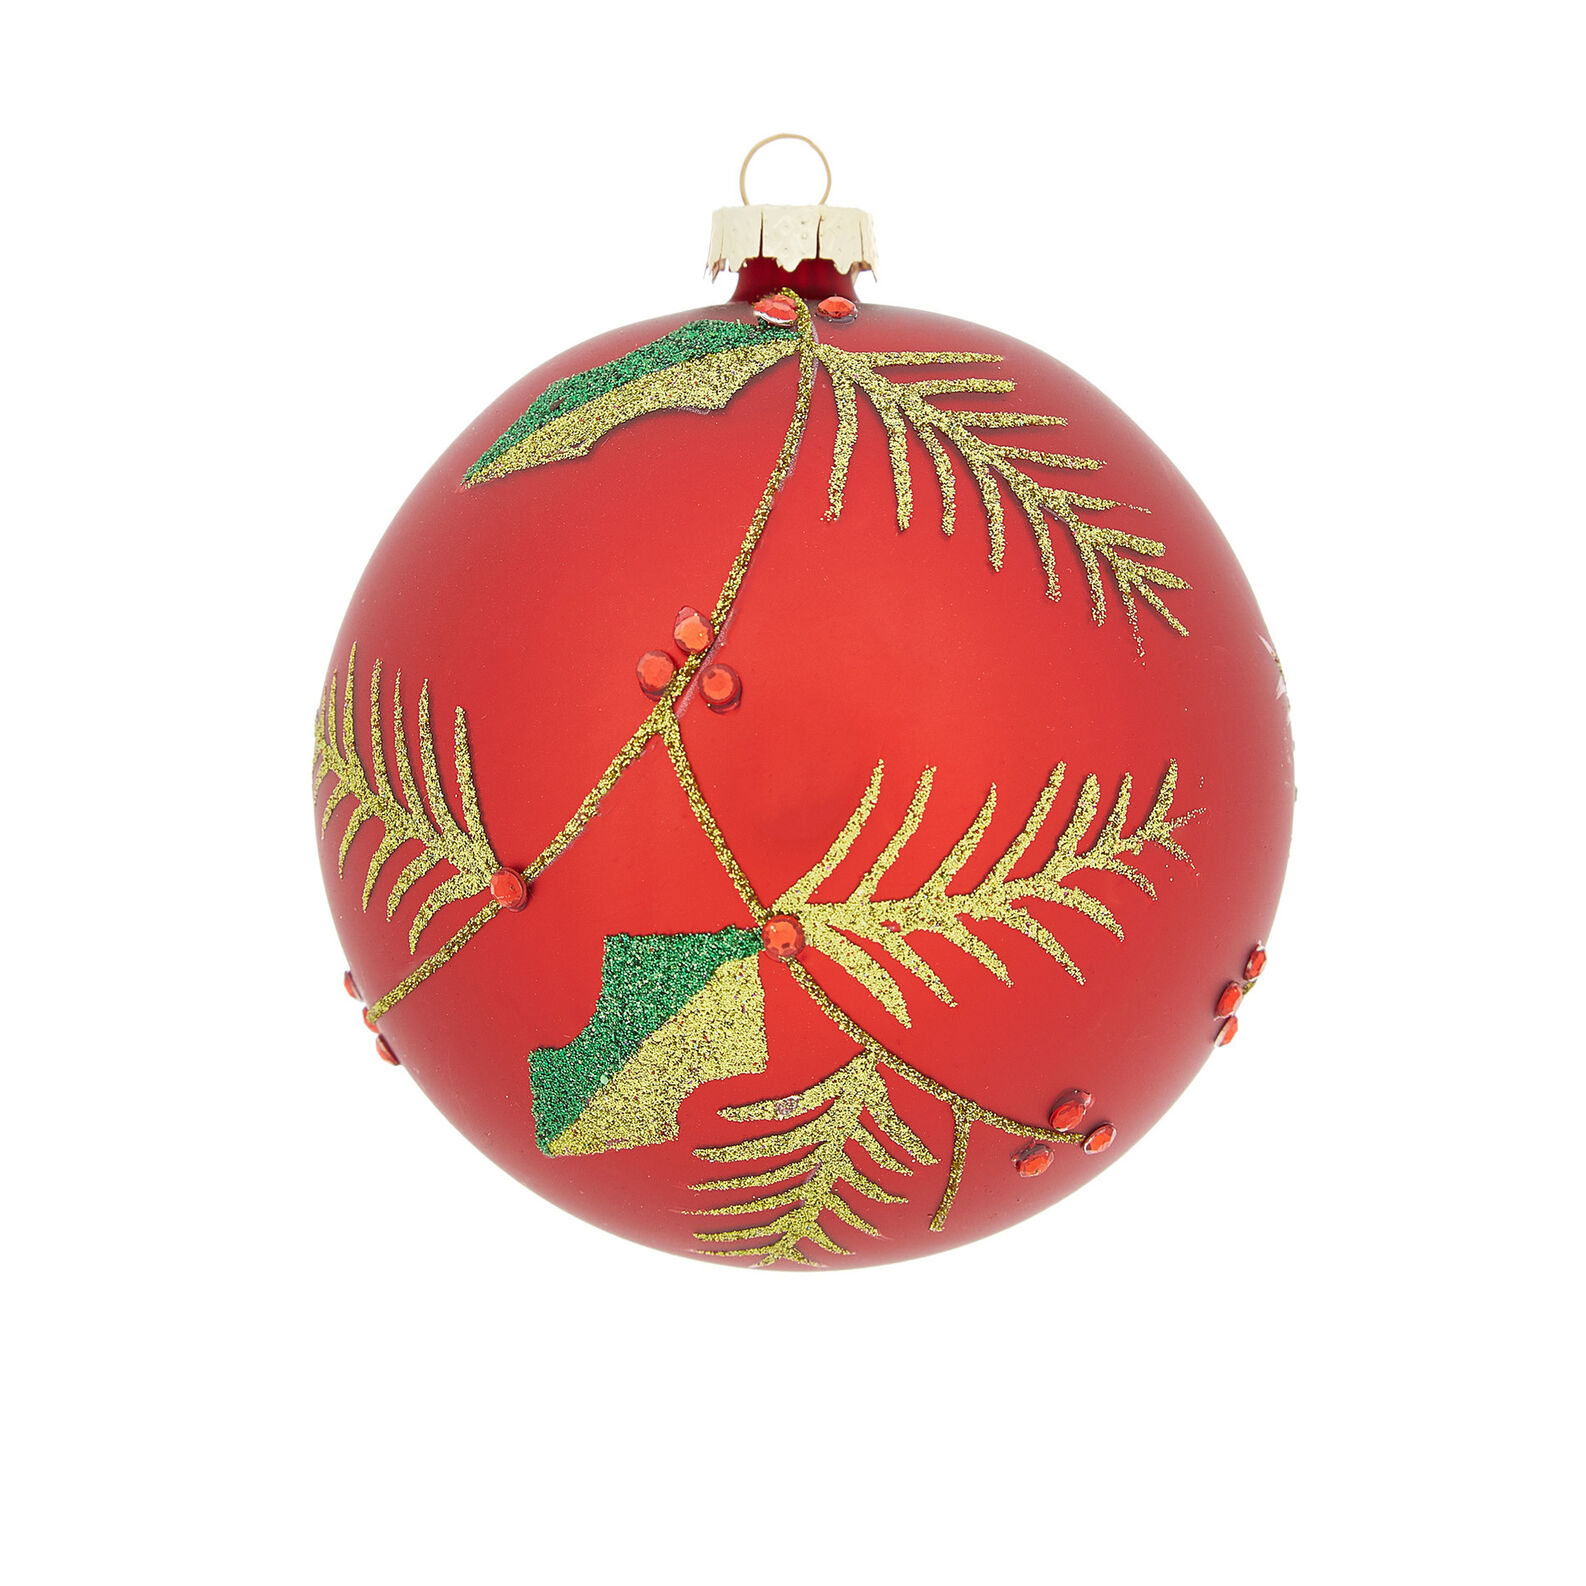 Hand-decorated holly bauble